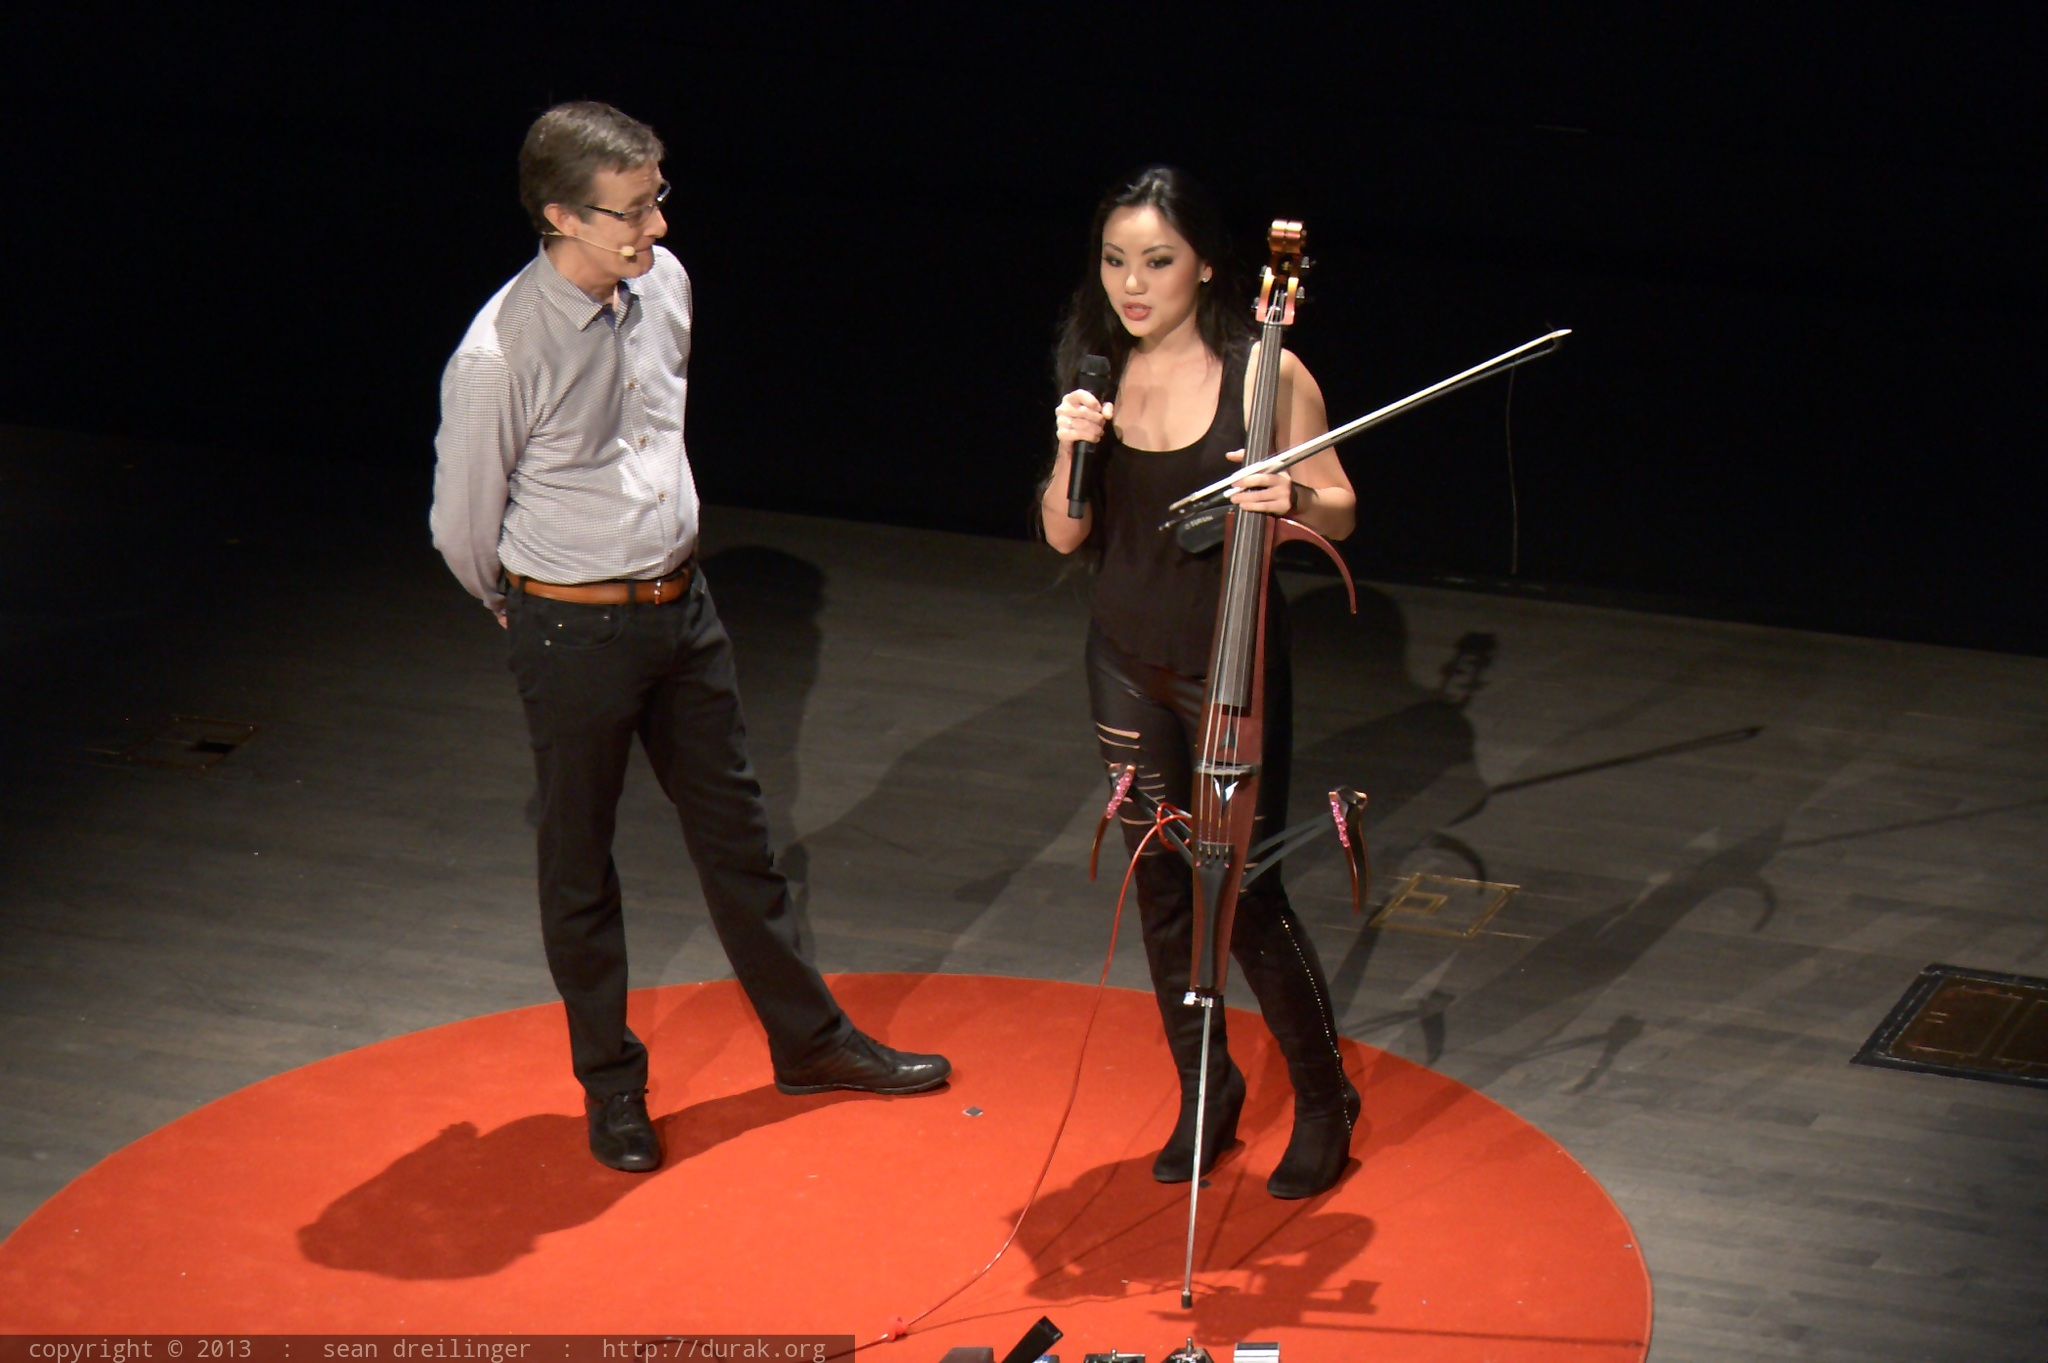 Tigres Et Felins furthermore Tina Guo TEDxSanDiego 2013 likewise File Ford Focus Mk  3 SE  US    Flickr   skinnylawyer also Page2 as well TRACTOR. on international paint